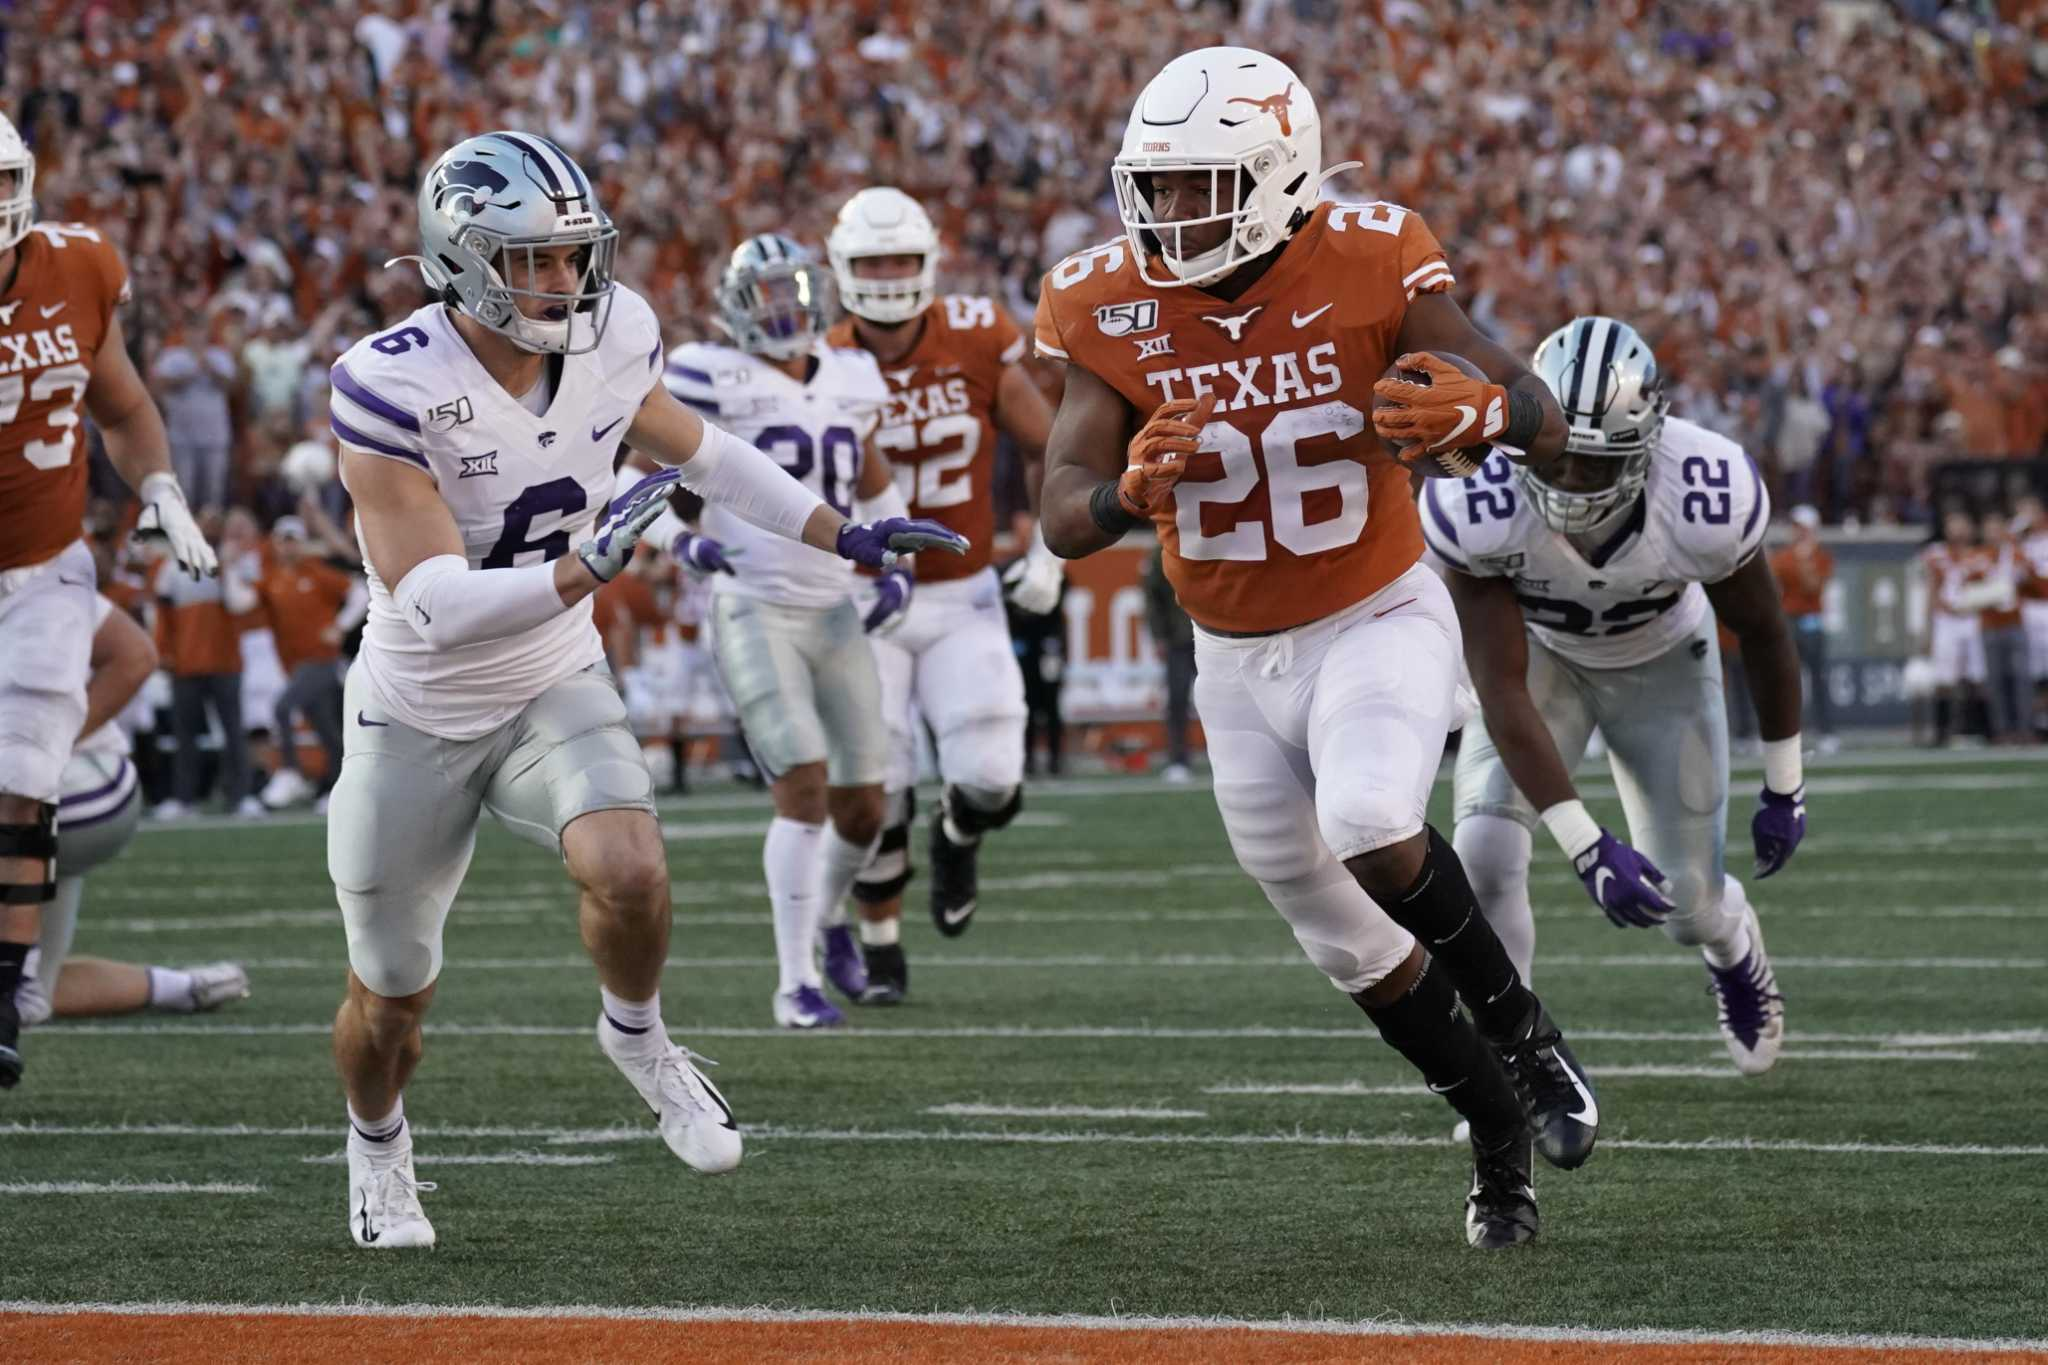 Texas, Utah should be good matchup in 'Disappointment Bowl'